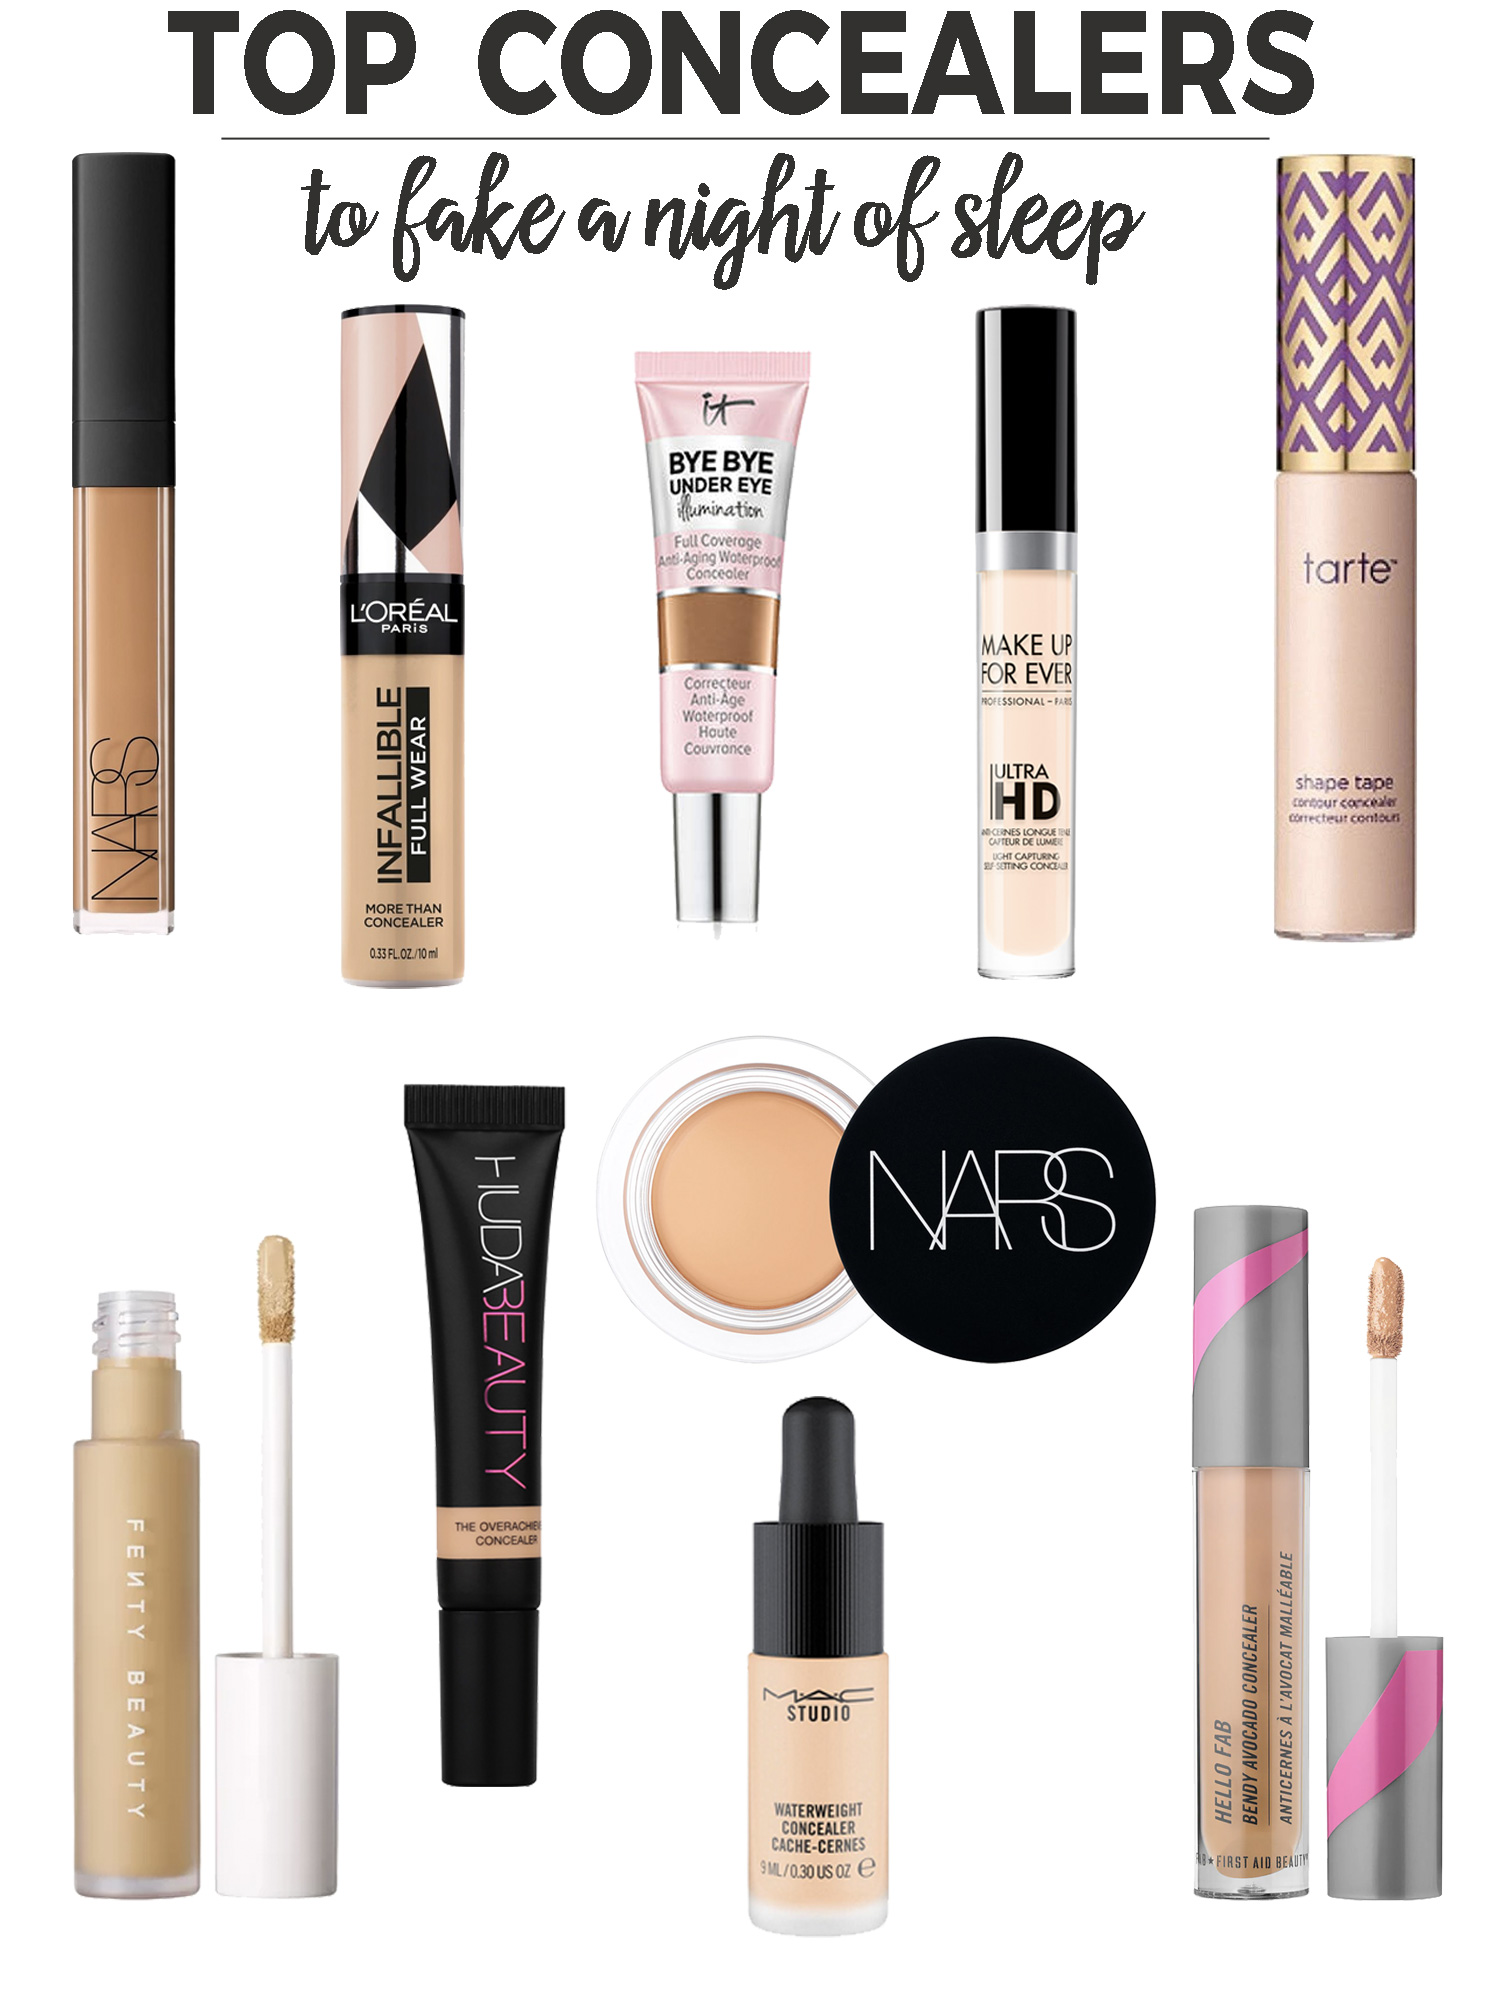 10 Concealers to Fake a Good Night of Sleep